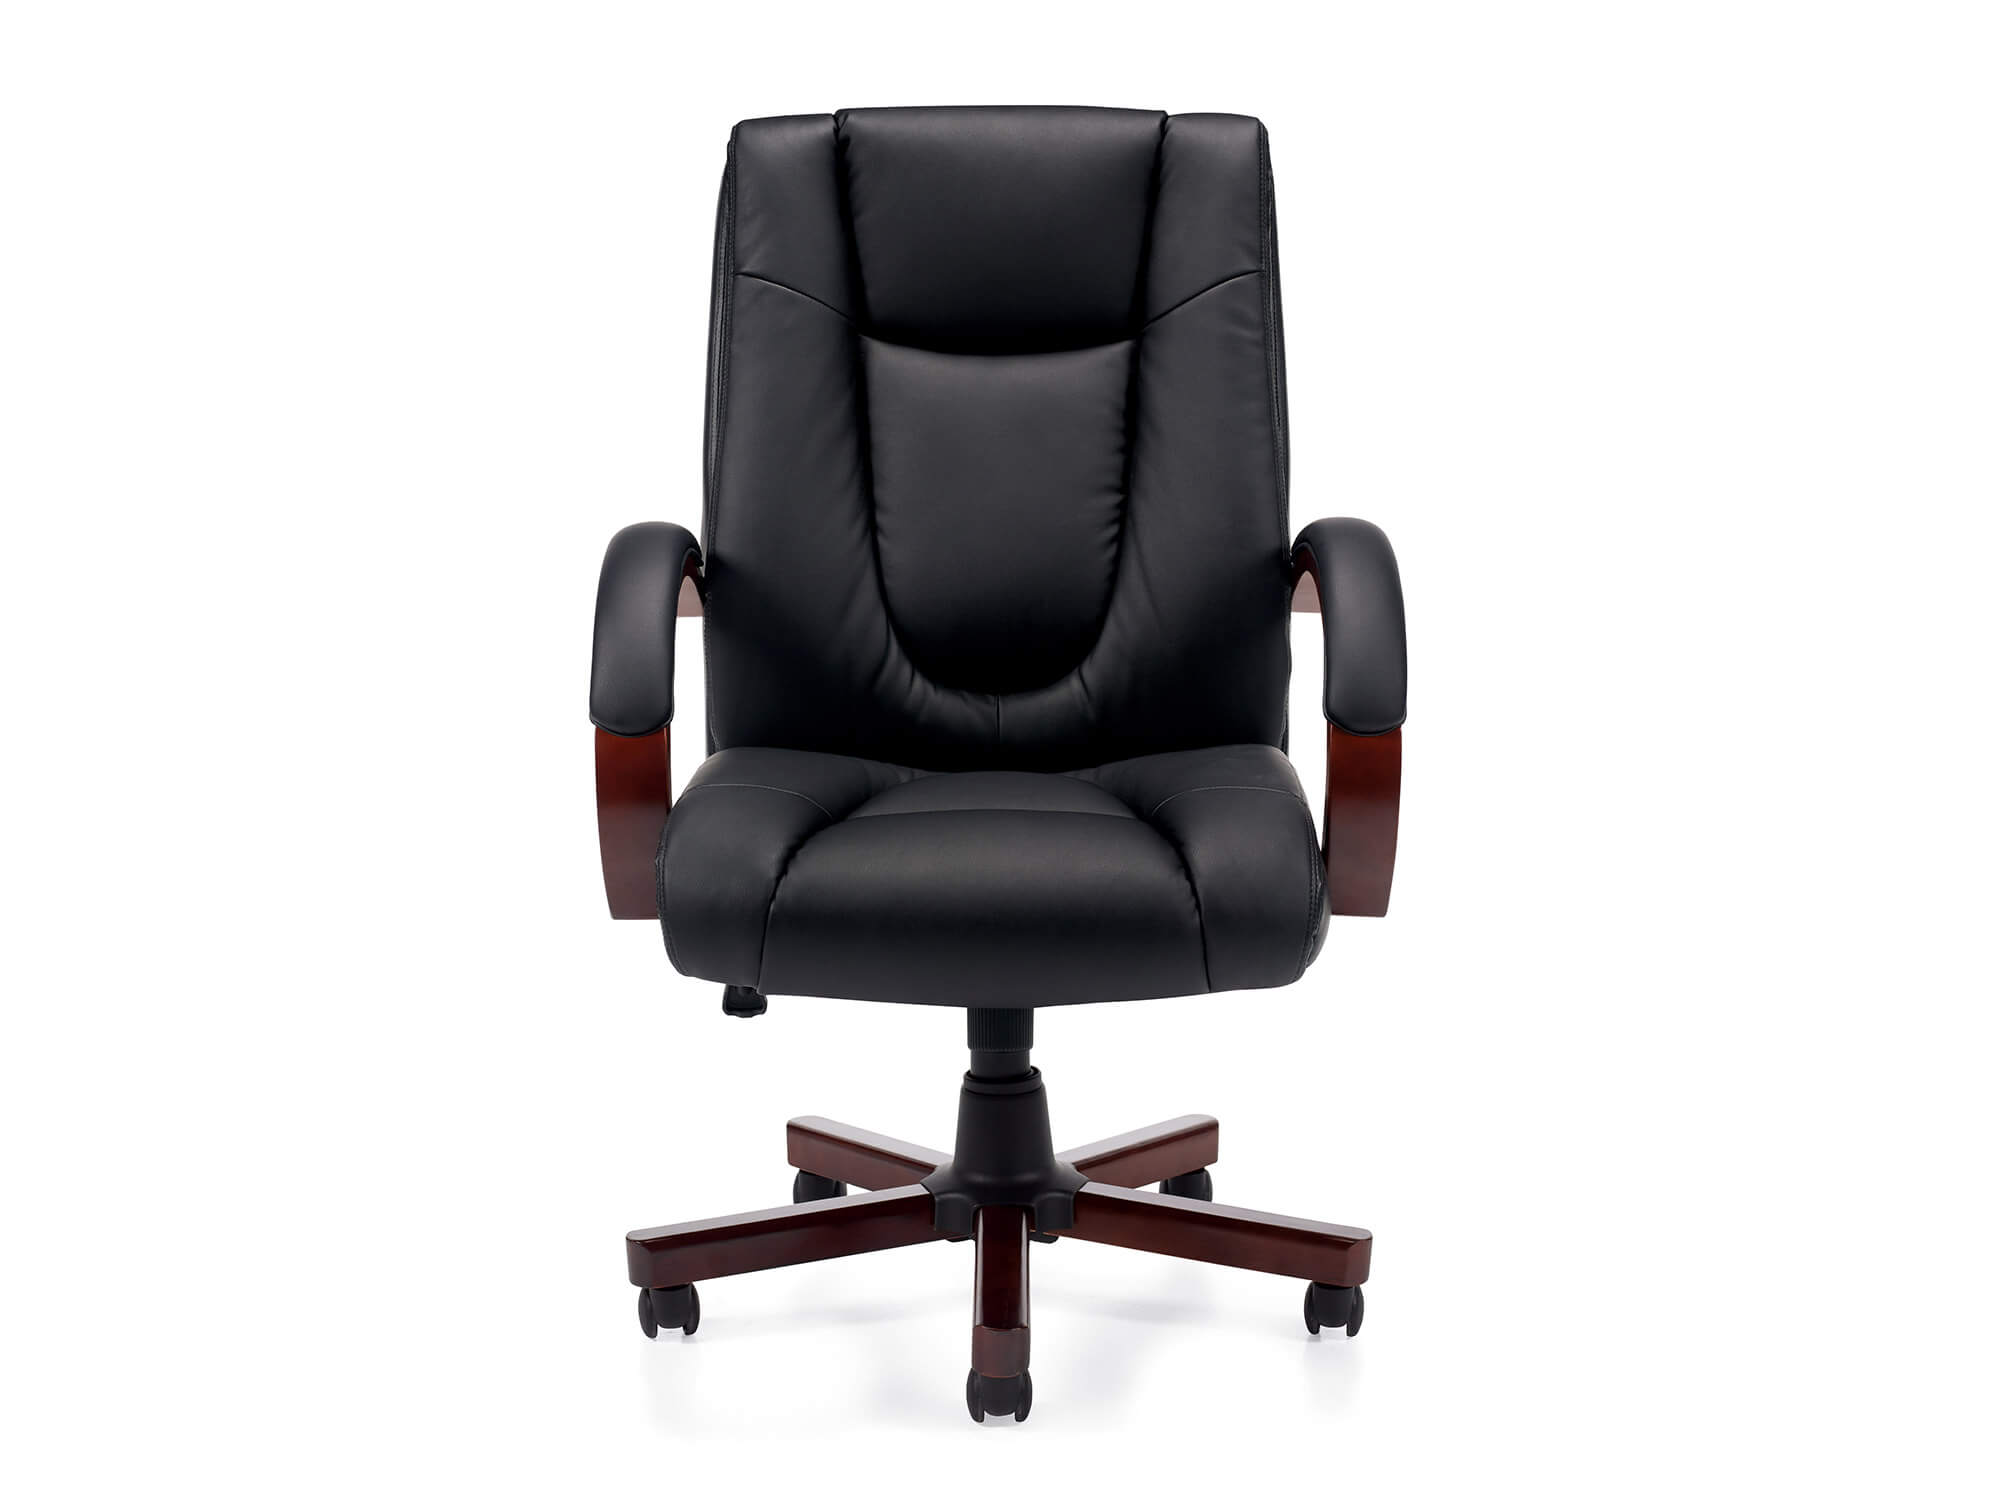 Wood office chair front